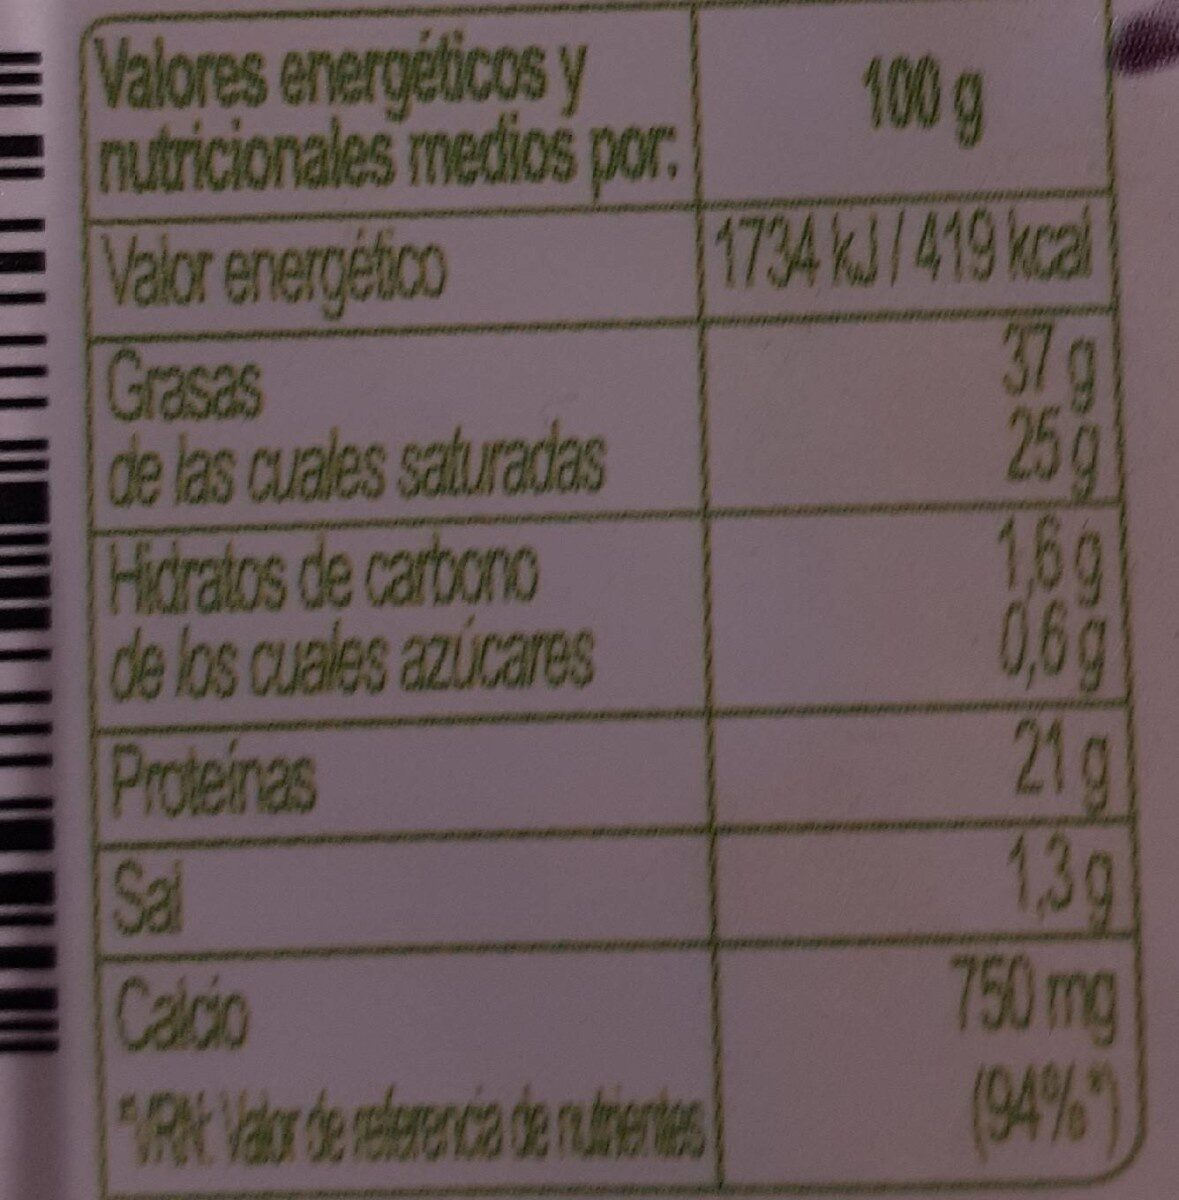 Queso bífida cabra - Nutrition facts